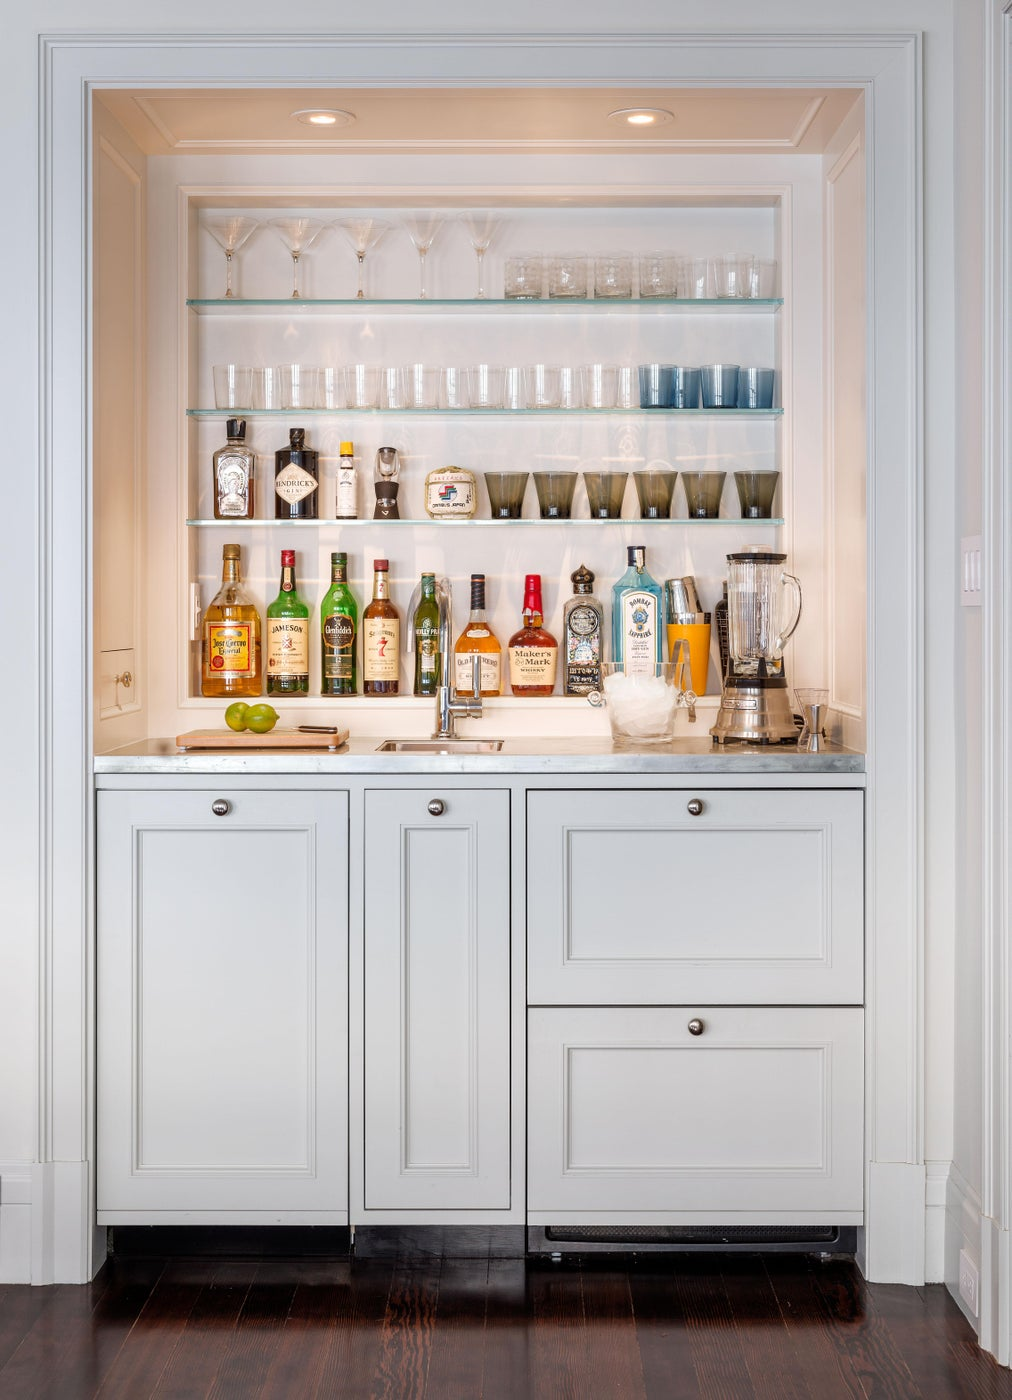 The Wet Bar hides a refrigerator and an ice maker